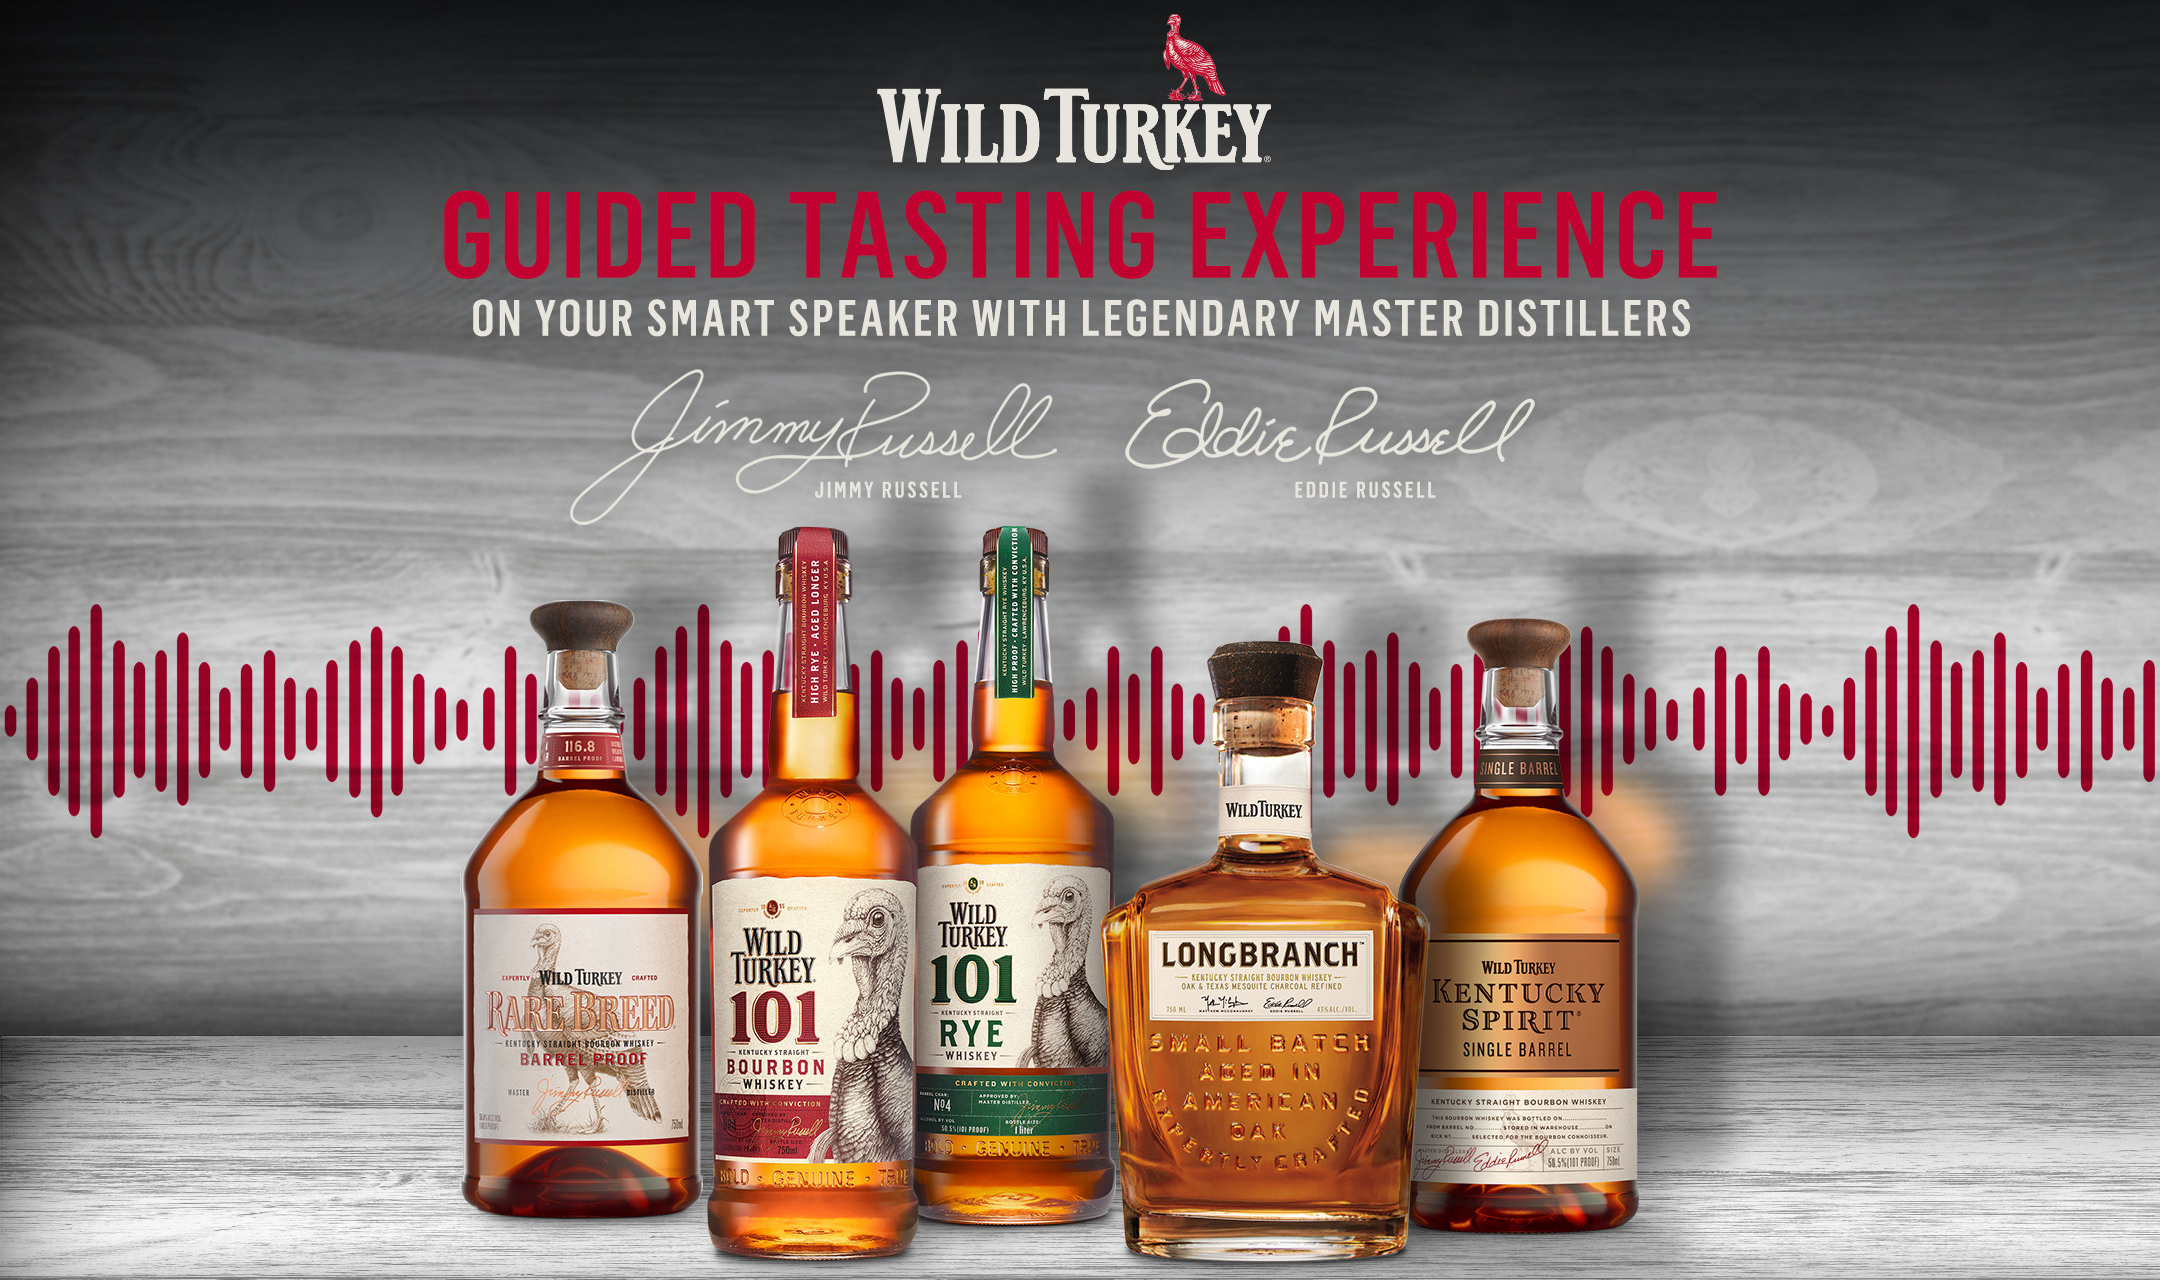 Wild Turkey Launches Virtual Guided Tasting For Amazon Alexa And Google Assistant - Spirited